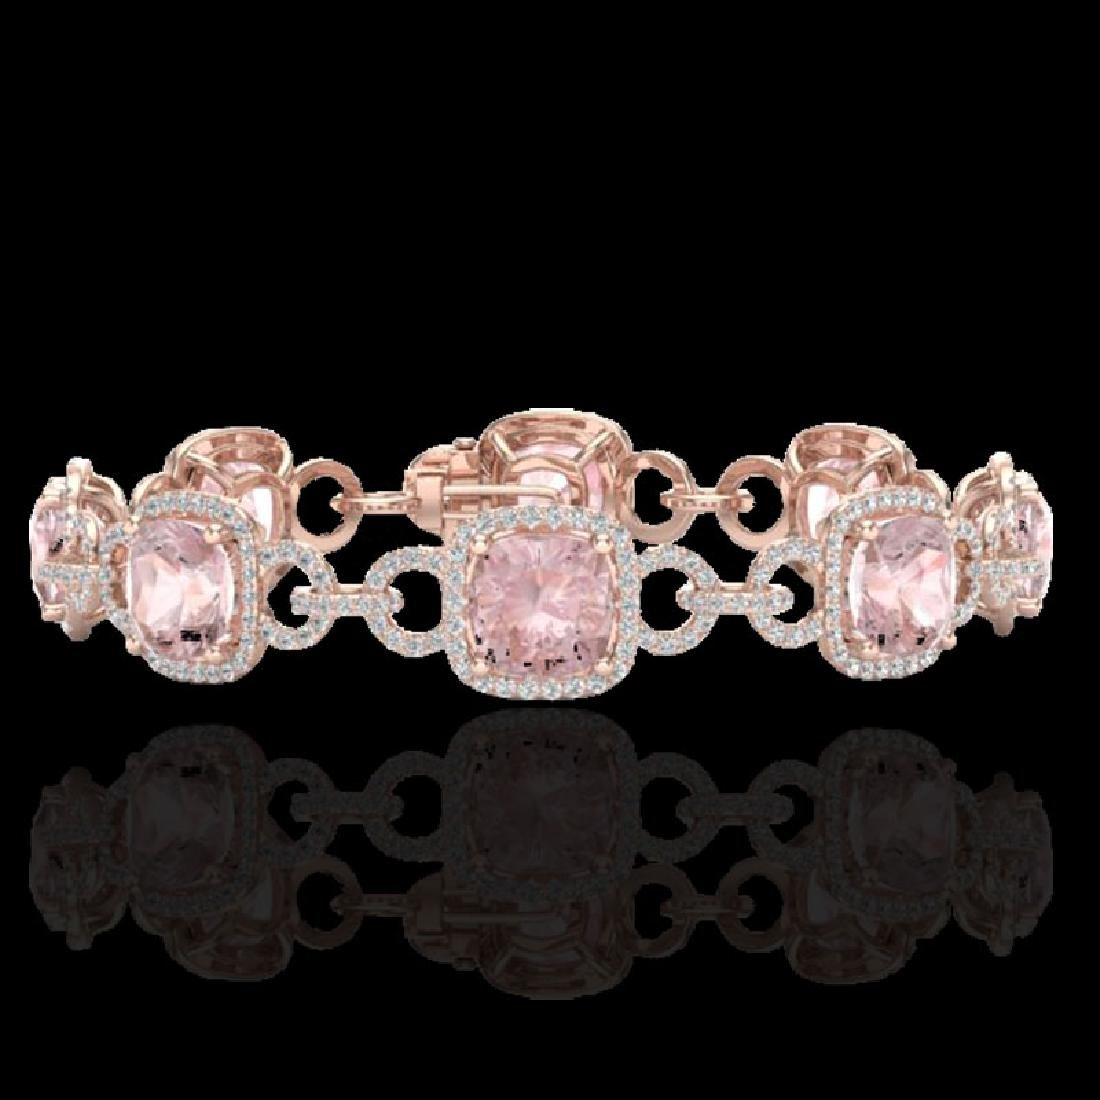 22 CTW Morganite & Micro VS/SI Diamond Bracelet 14K